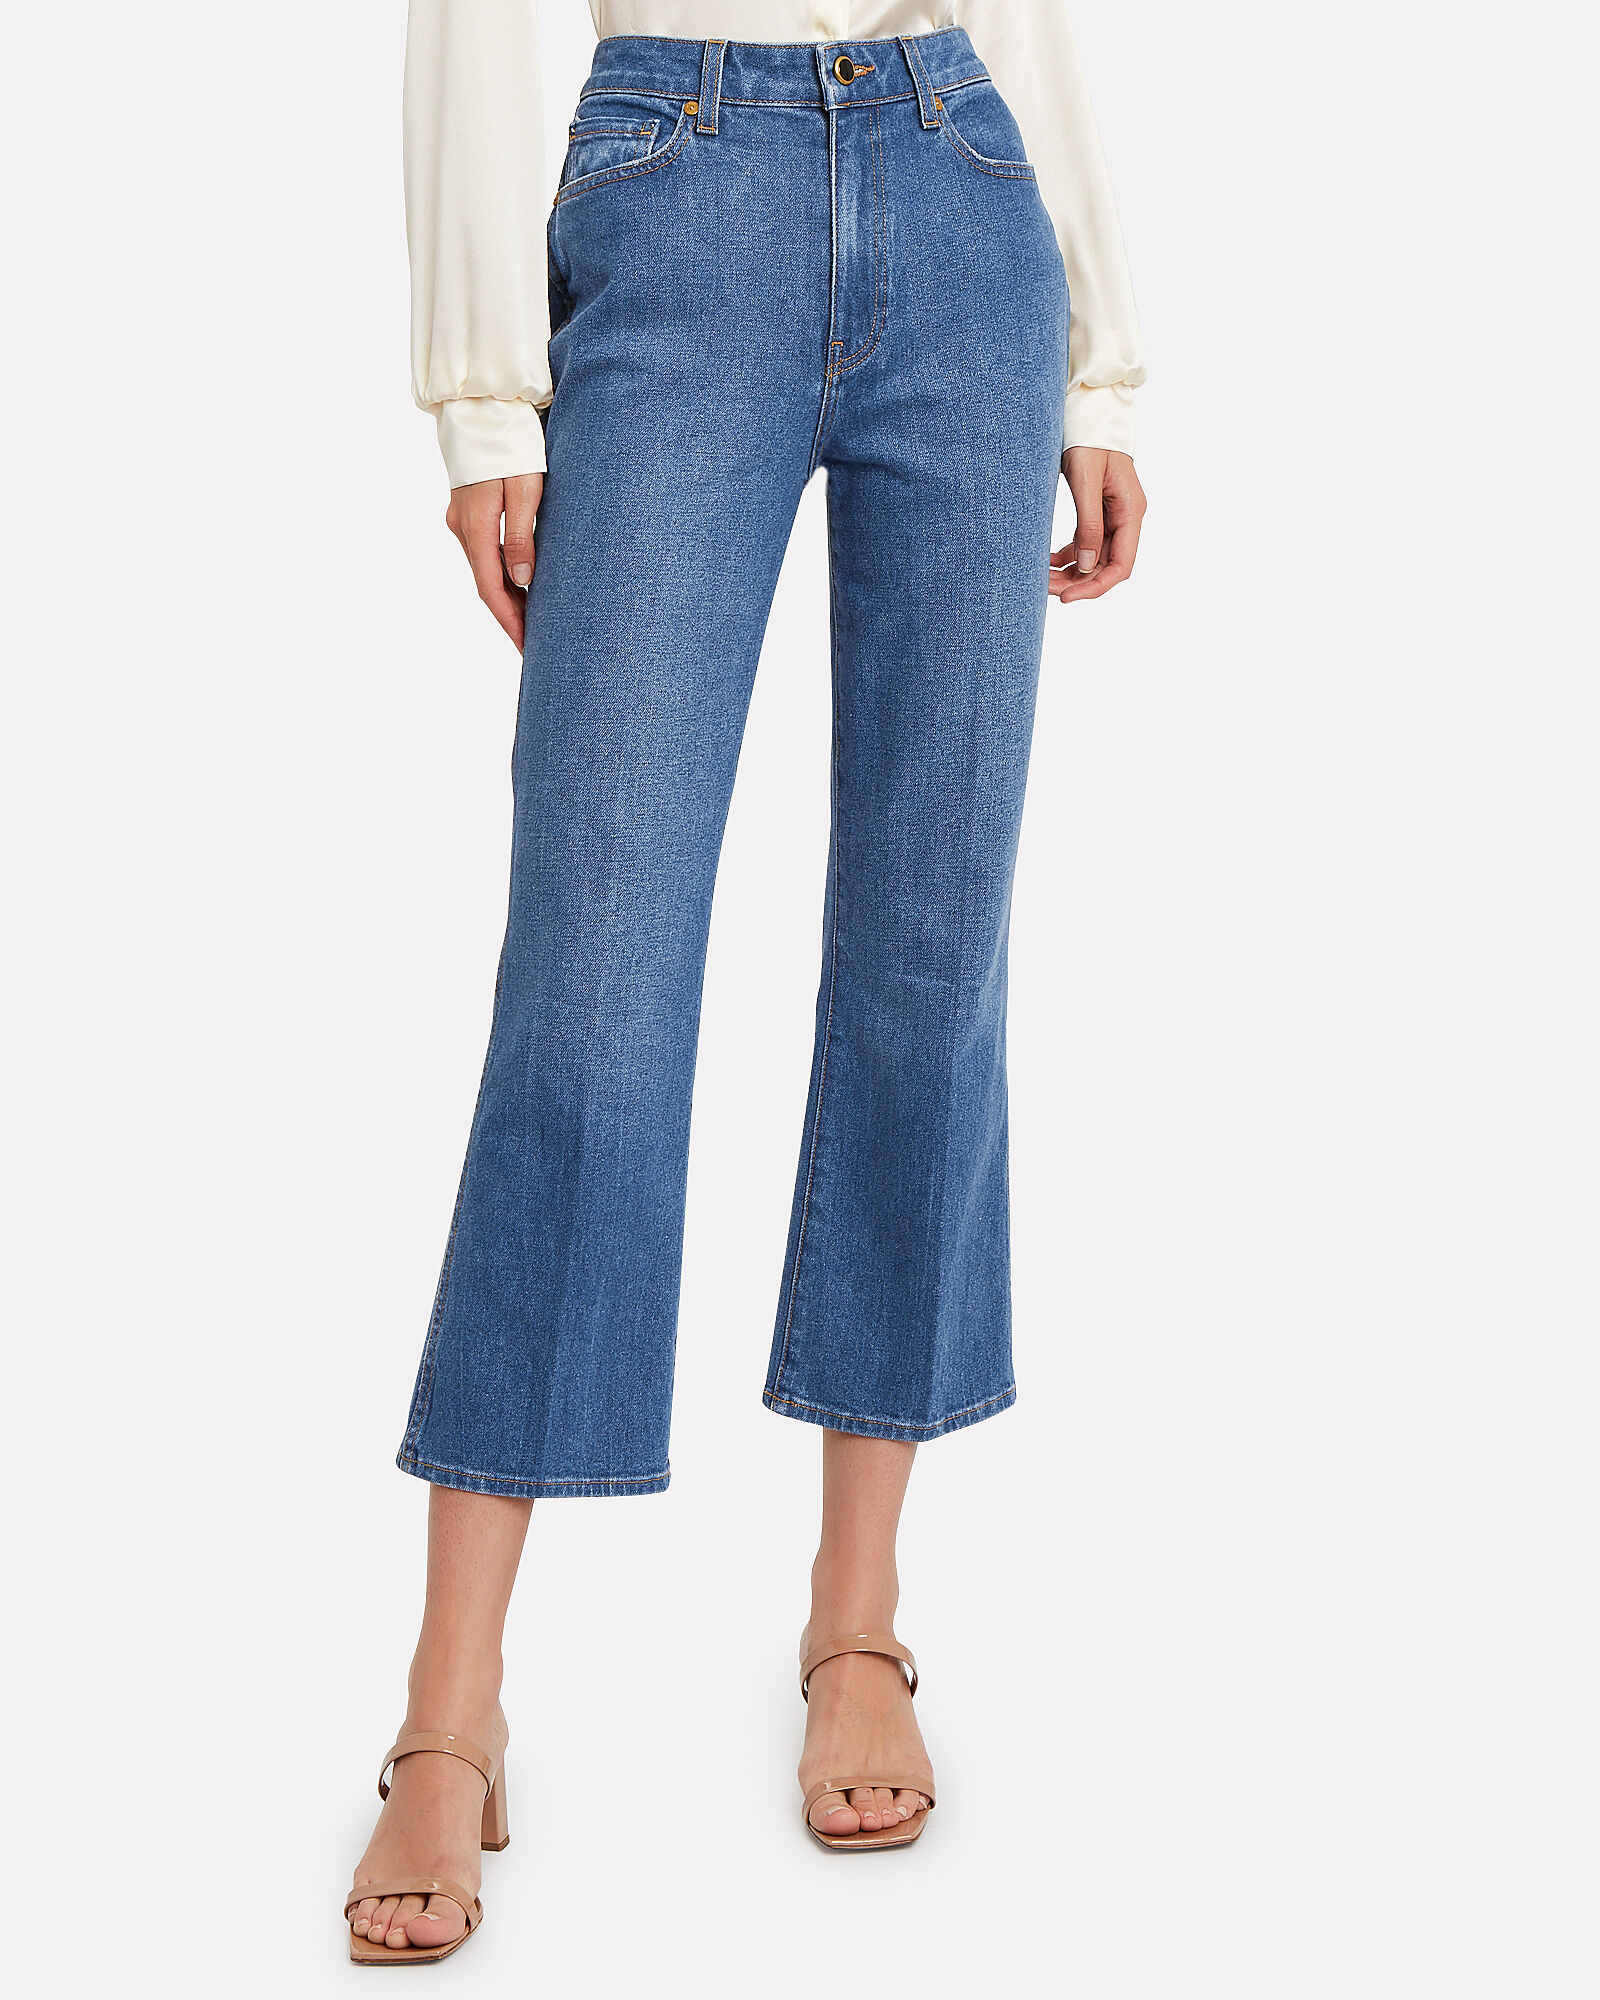 Benny Cropped Flare Jeans, MEDIUM WASH DENIM, hi-res